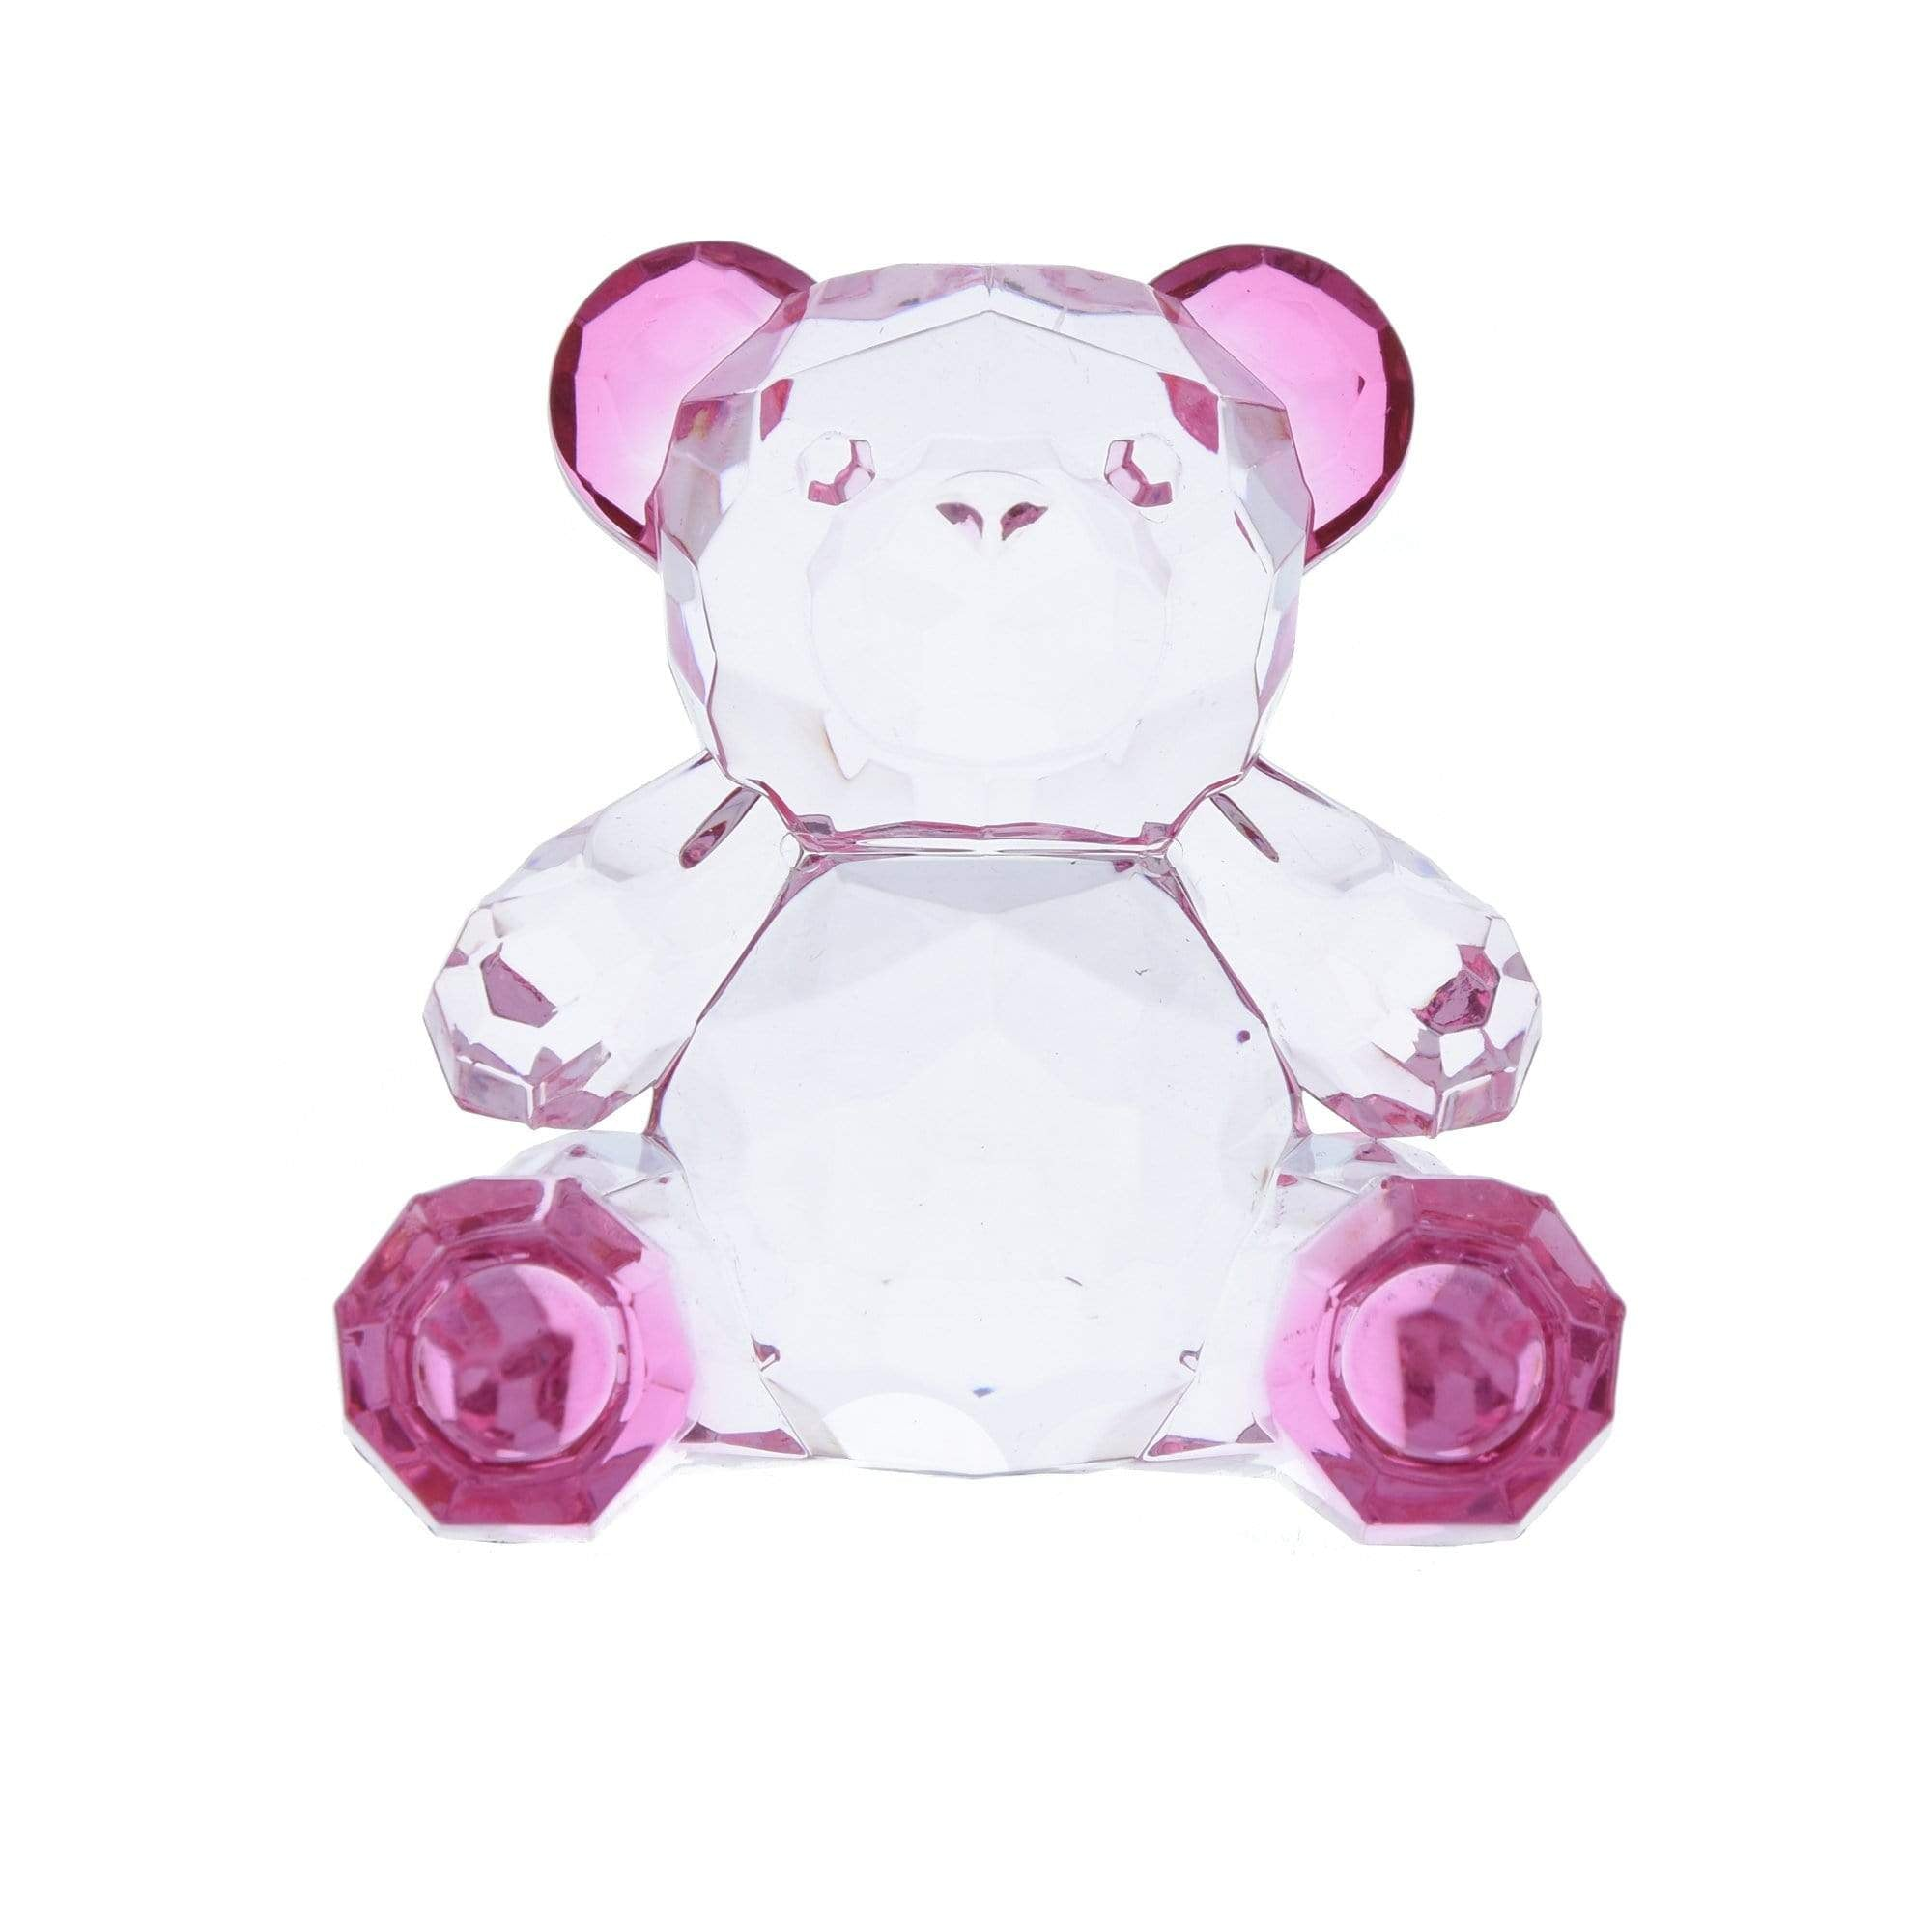 Candlelight Home Animals & Insects Teddy Bear Ornament Small Pink 6.5cm 12PK